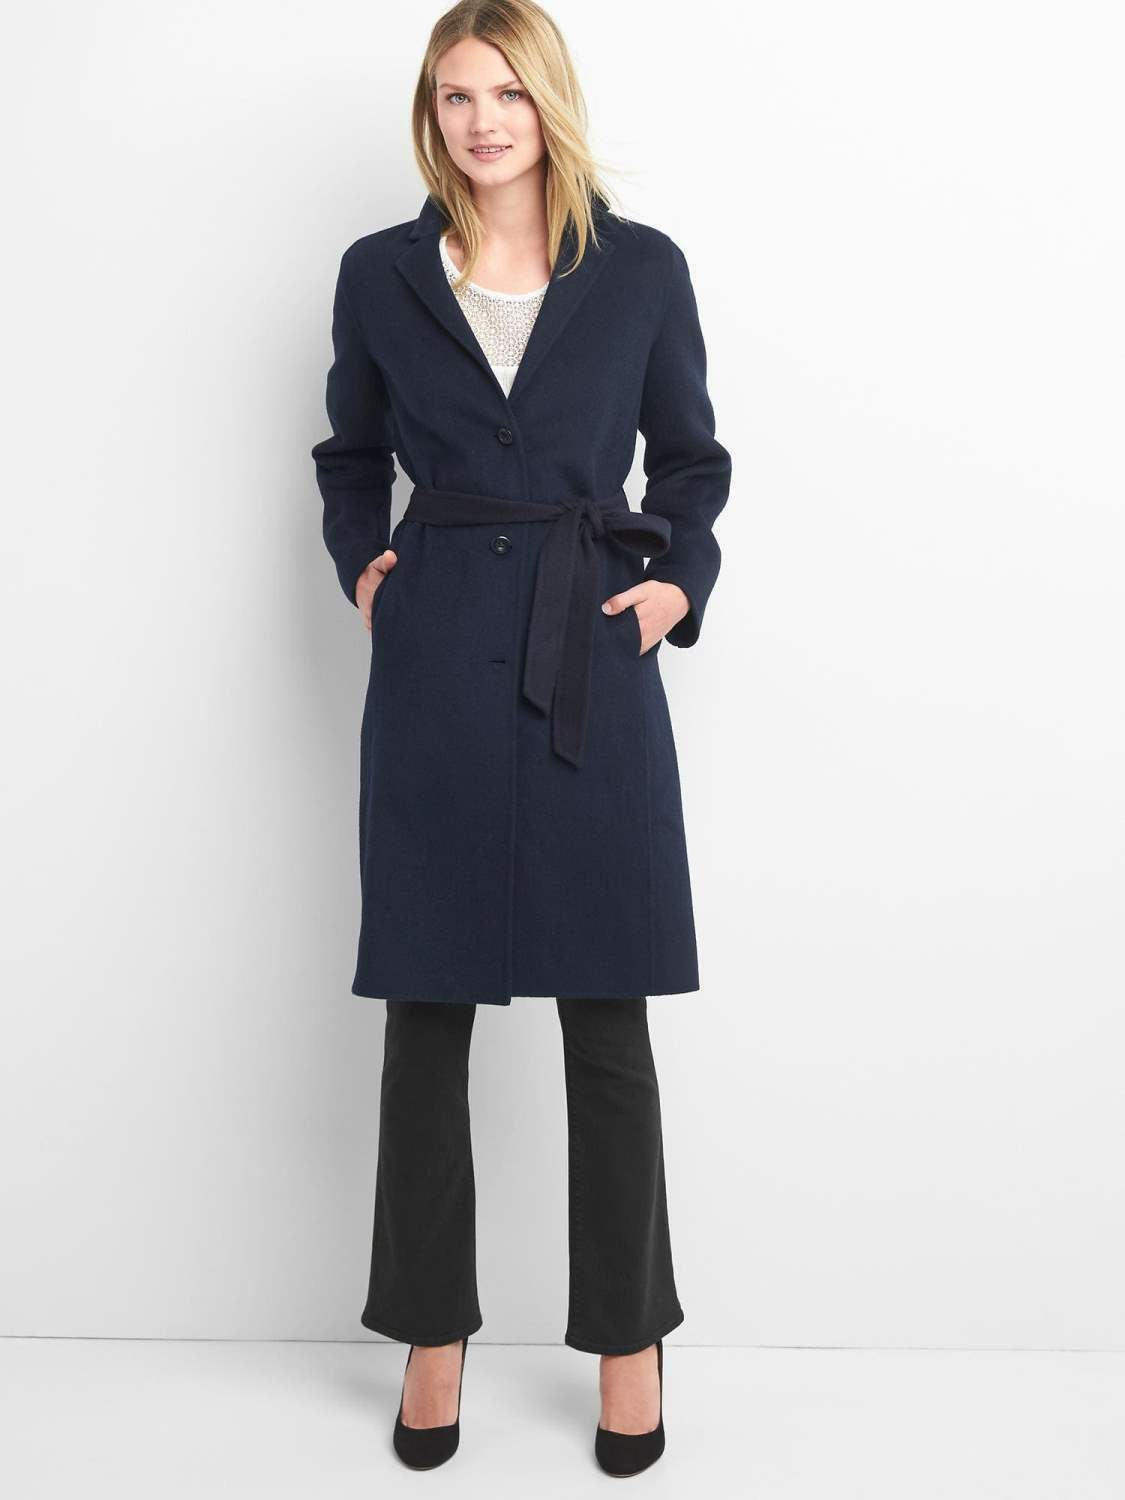 NWT GAP Classic Wool Coat, Dark Night (Navy), size L